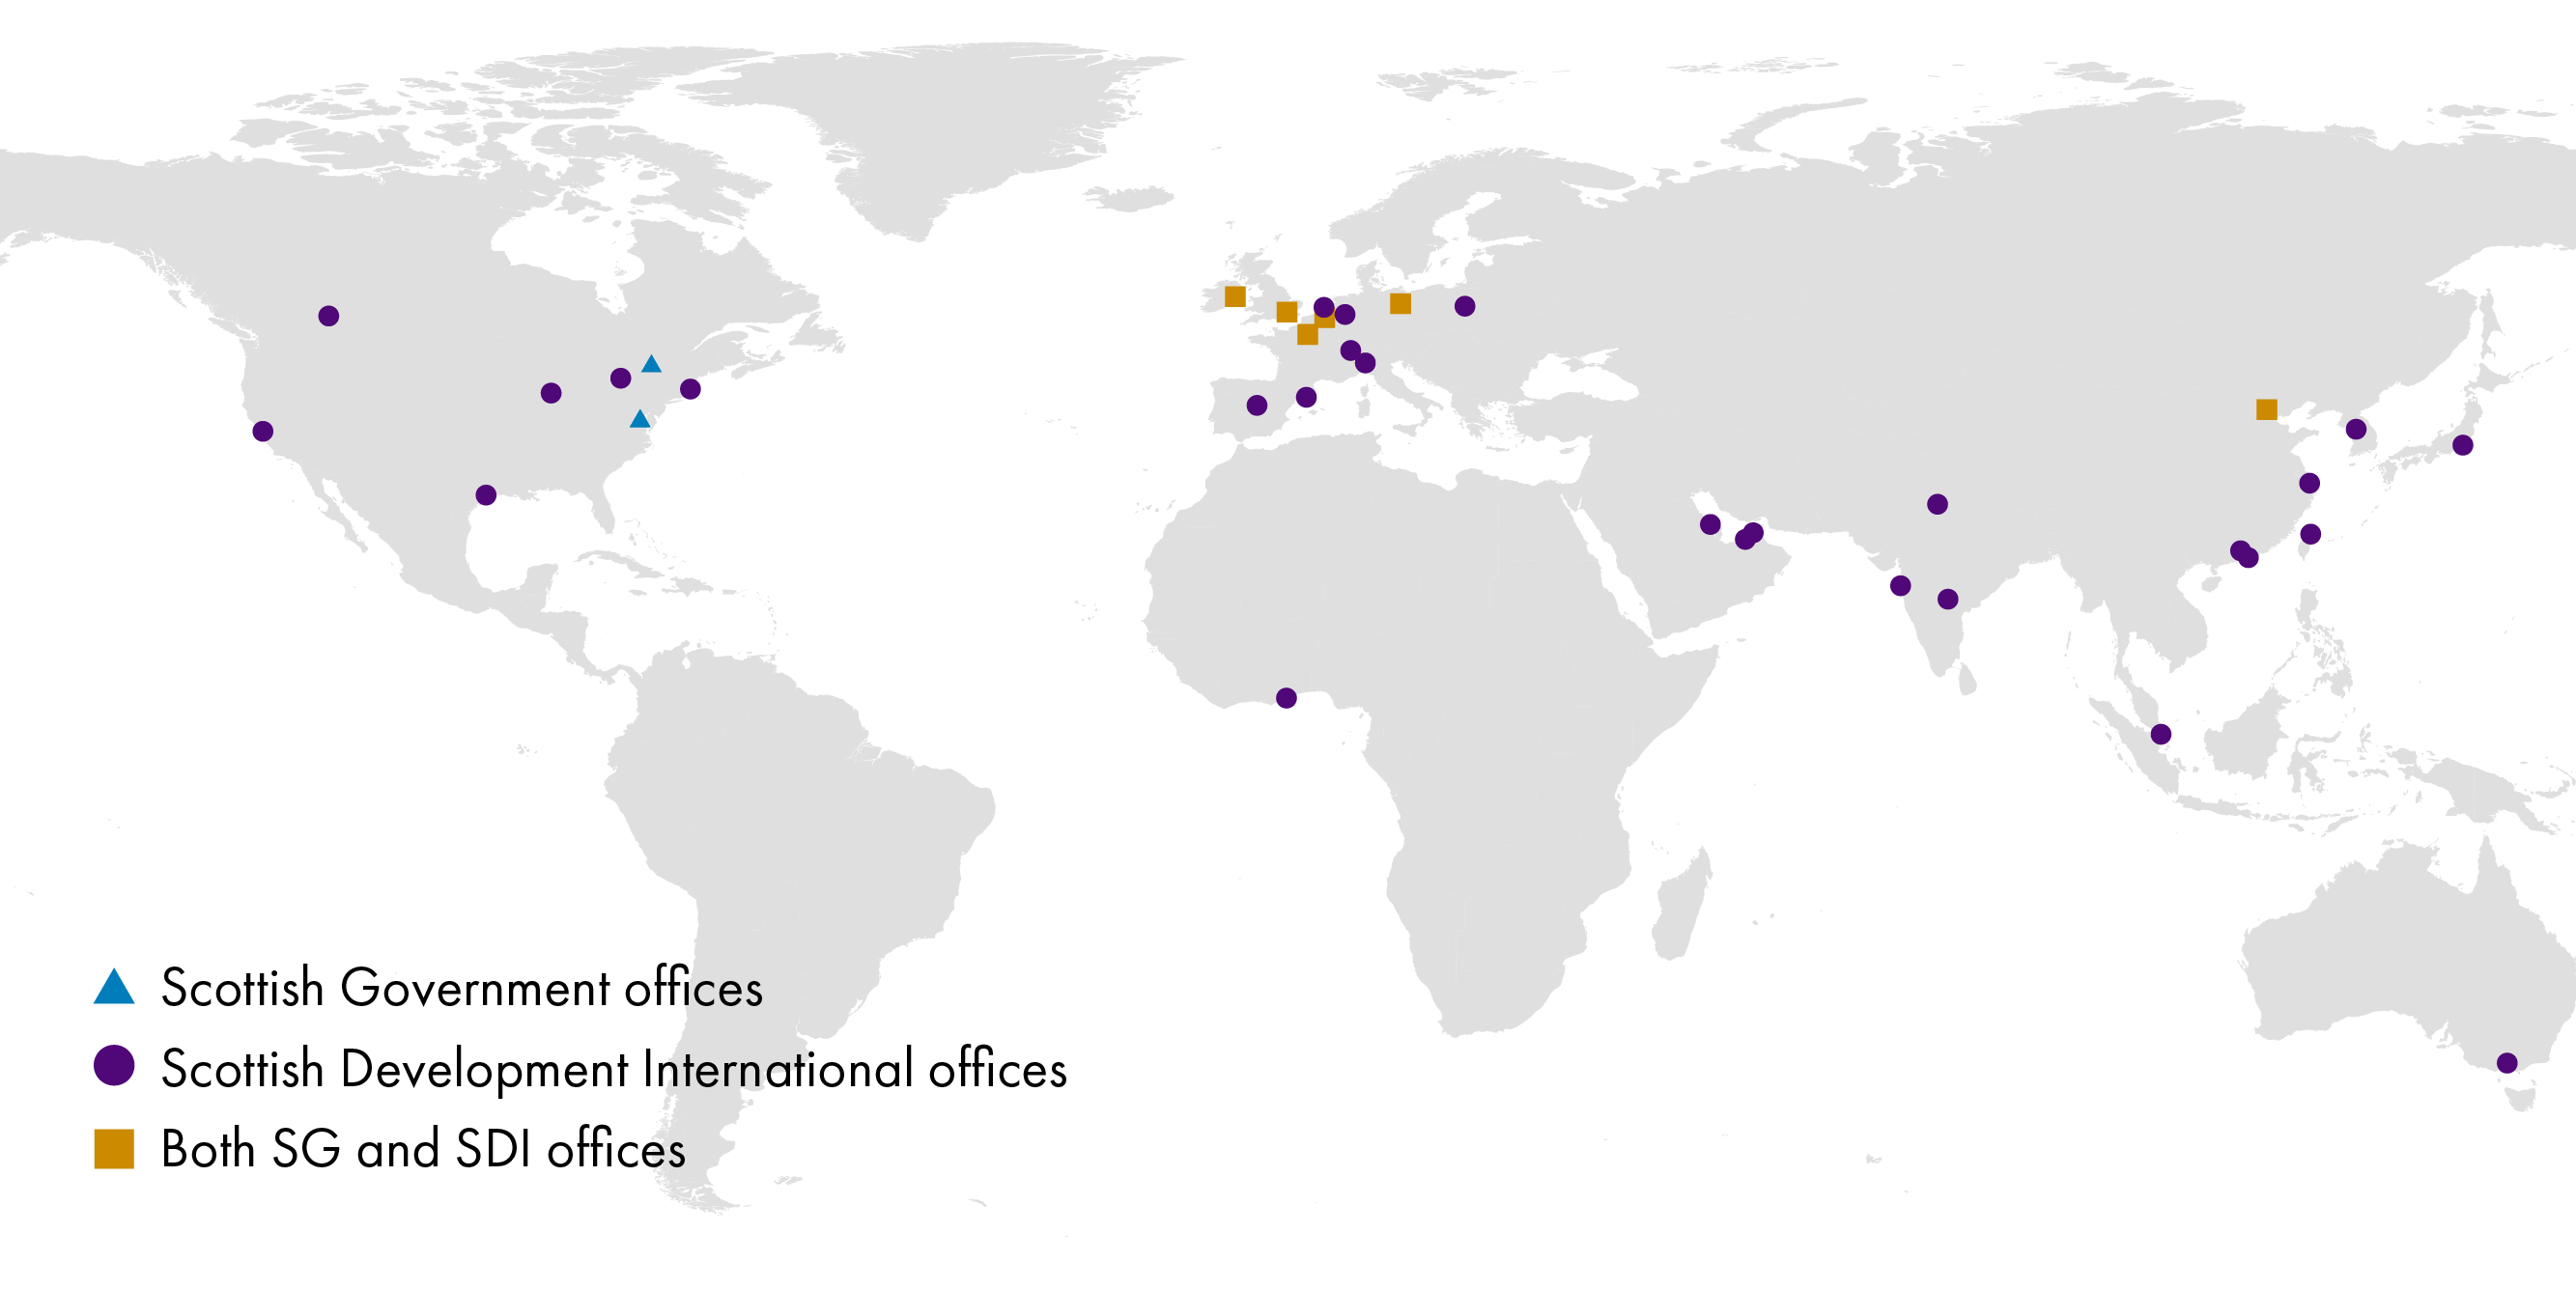 This map shows the location of the Scottish Government's 8 international offices and Scottish Development International's 34 international offices.